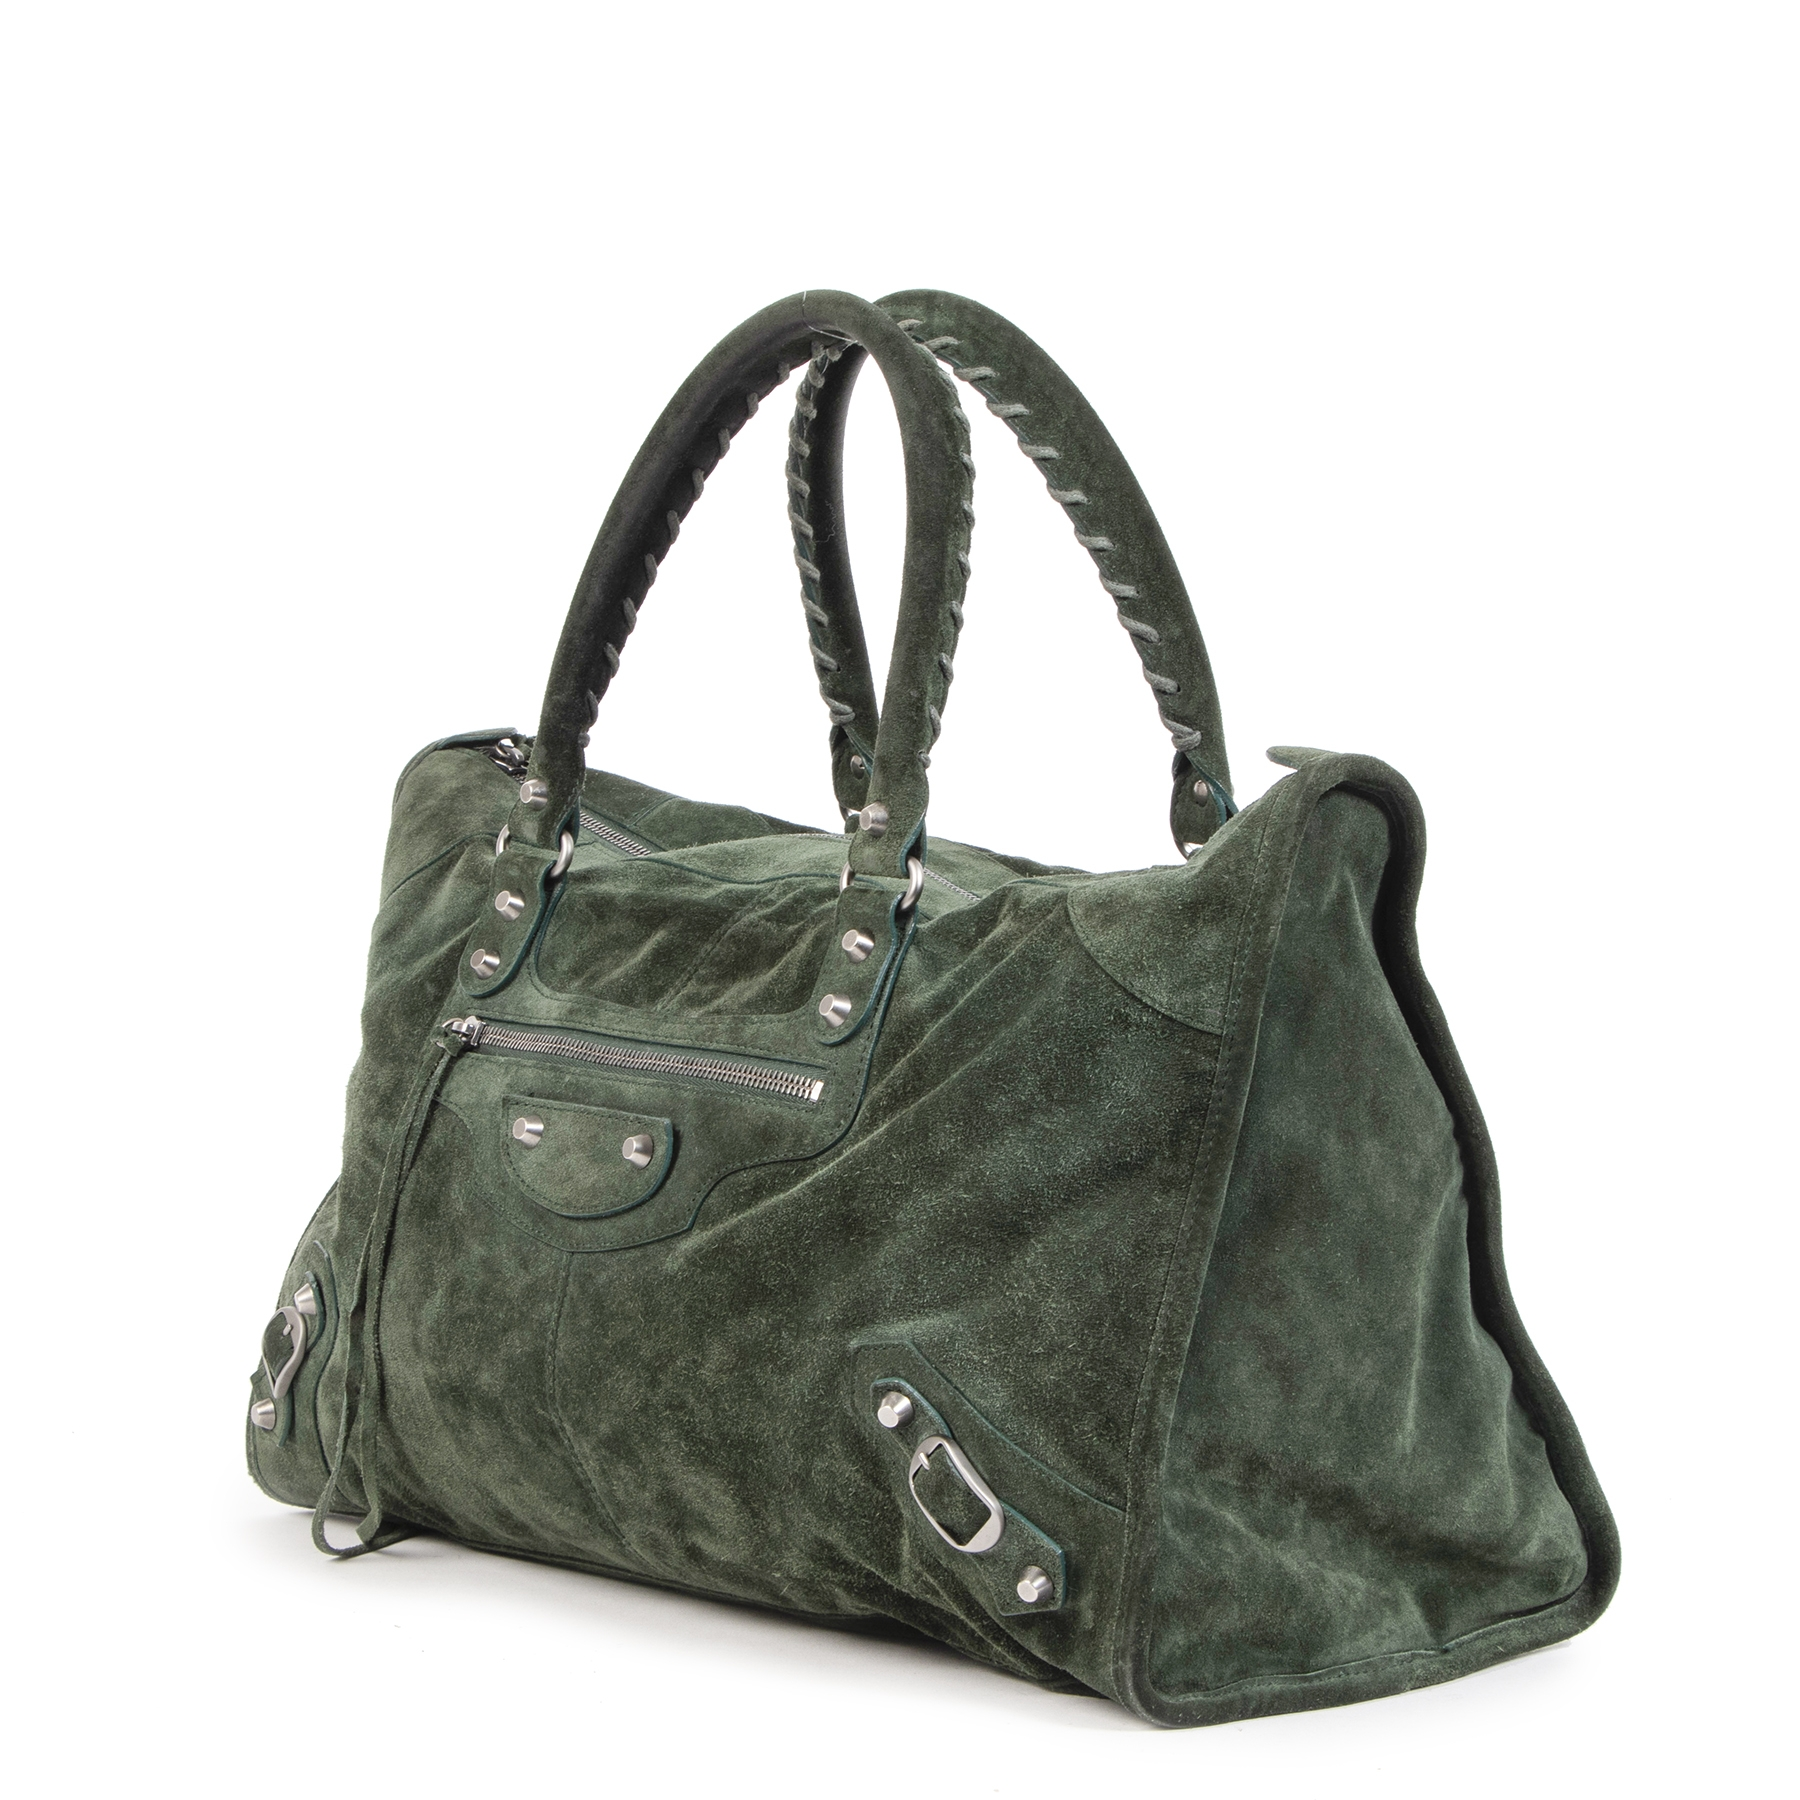 Balenciaga Dark Green Suede Work Bag shop safe online